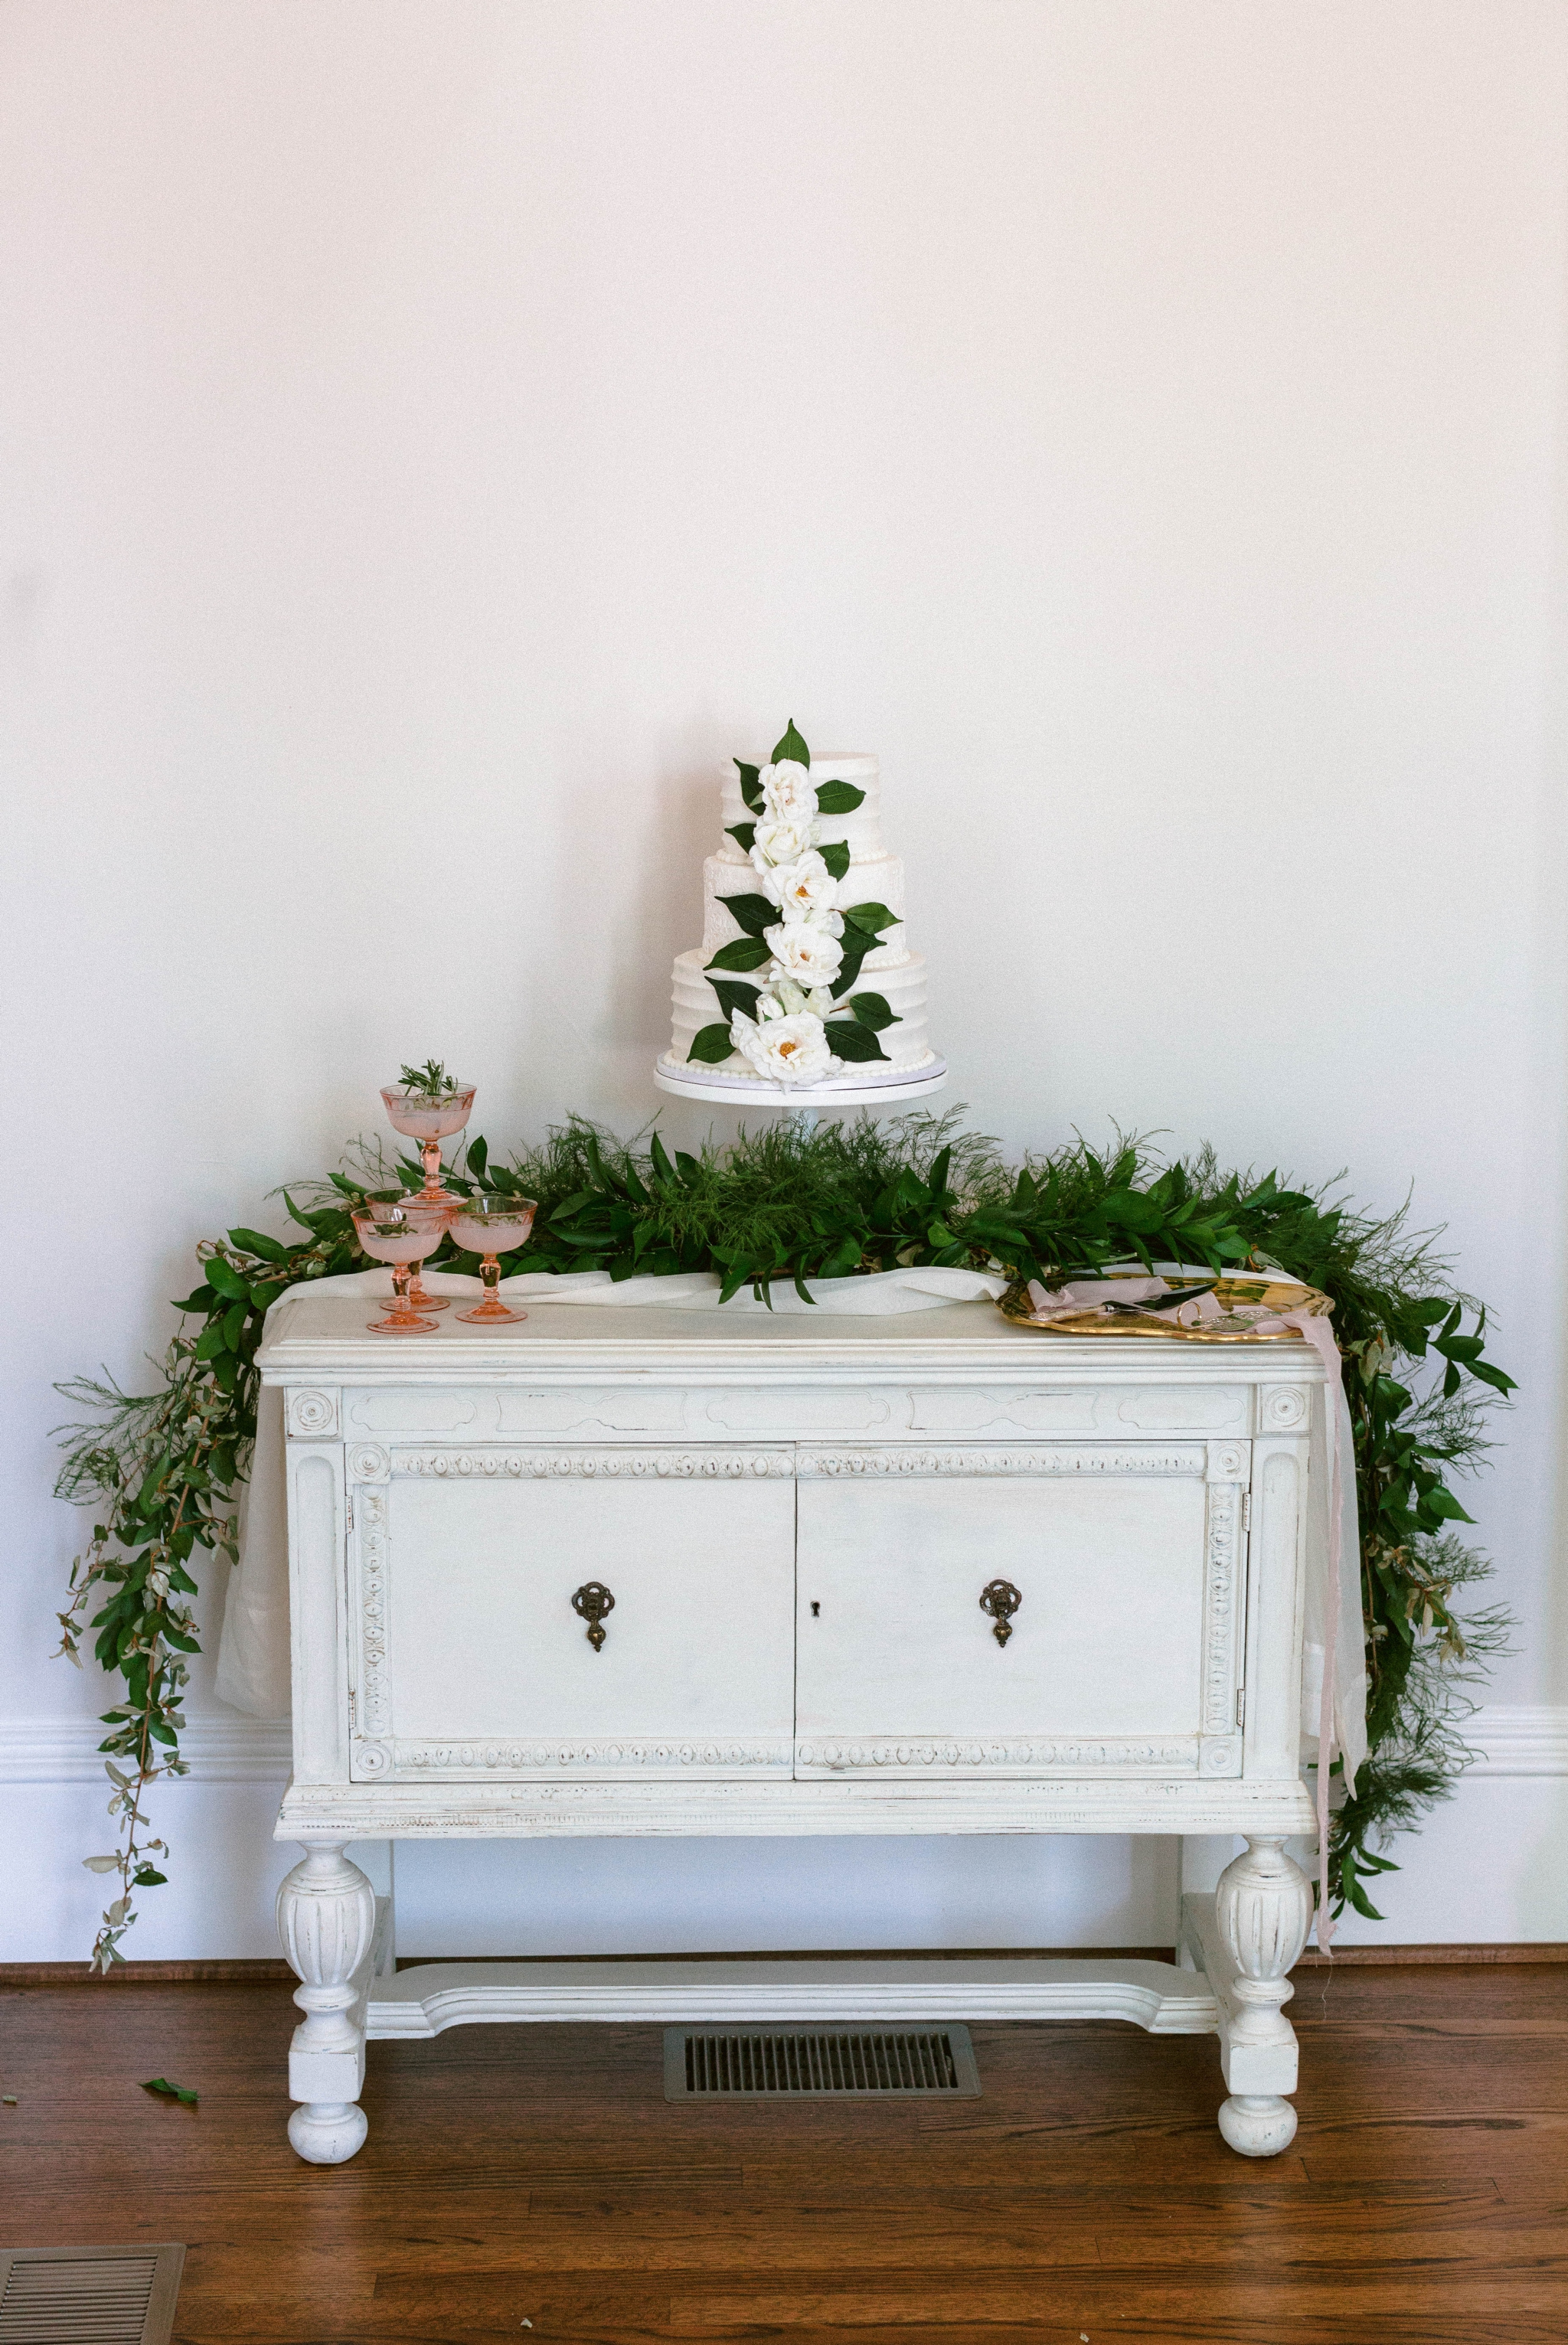 cake table on an all white antique dresser with an all white cake decorated with greenery -  luxury cake table inspiration - honolulu oahu hawaii wedding photographer - johanna dye photography